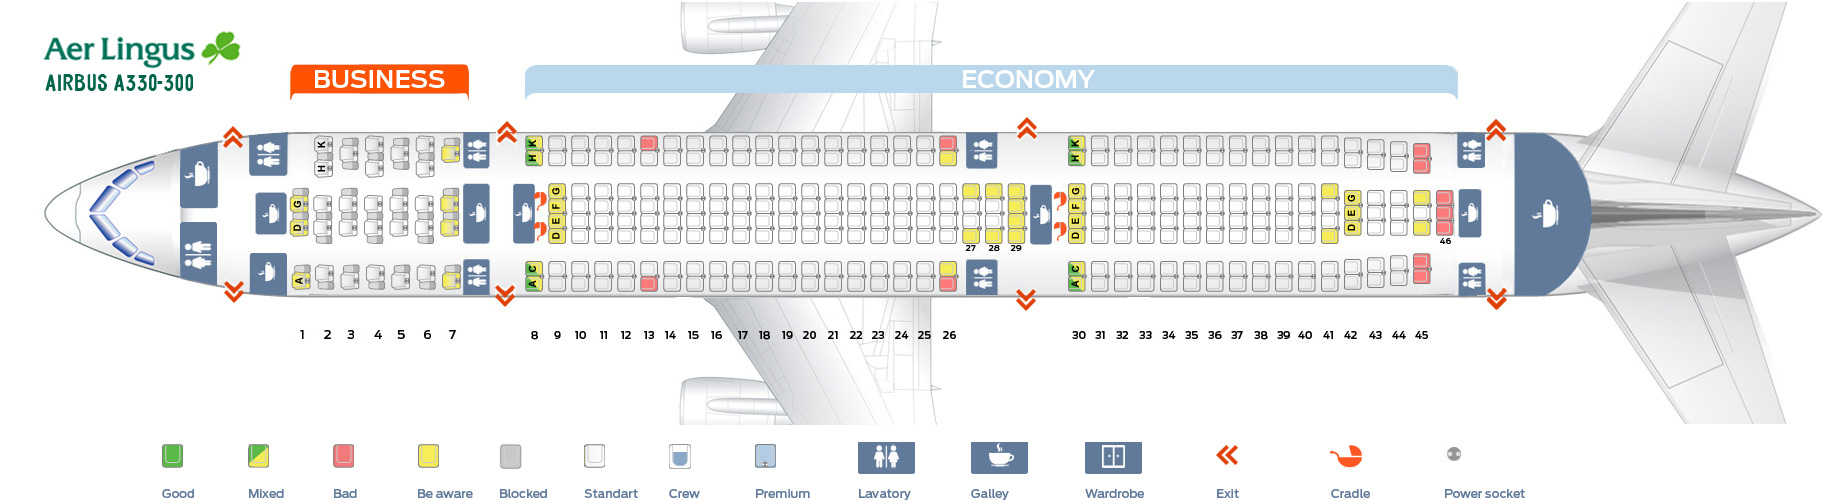 Seat map Airbus A330-300 Aer Lingus